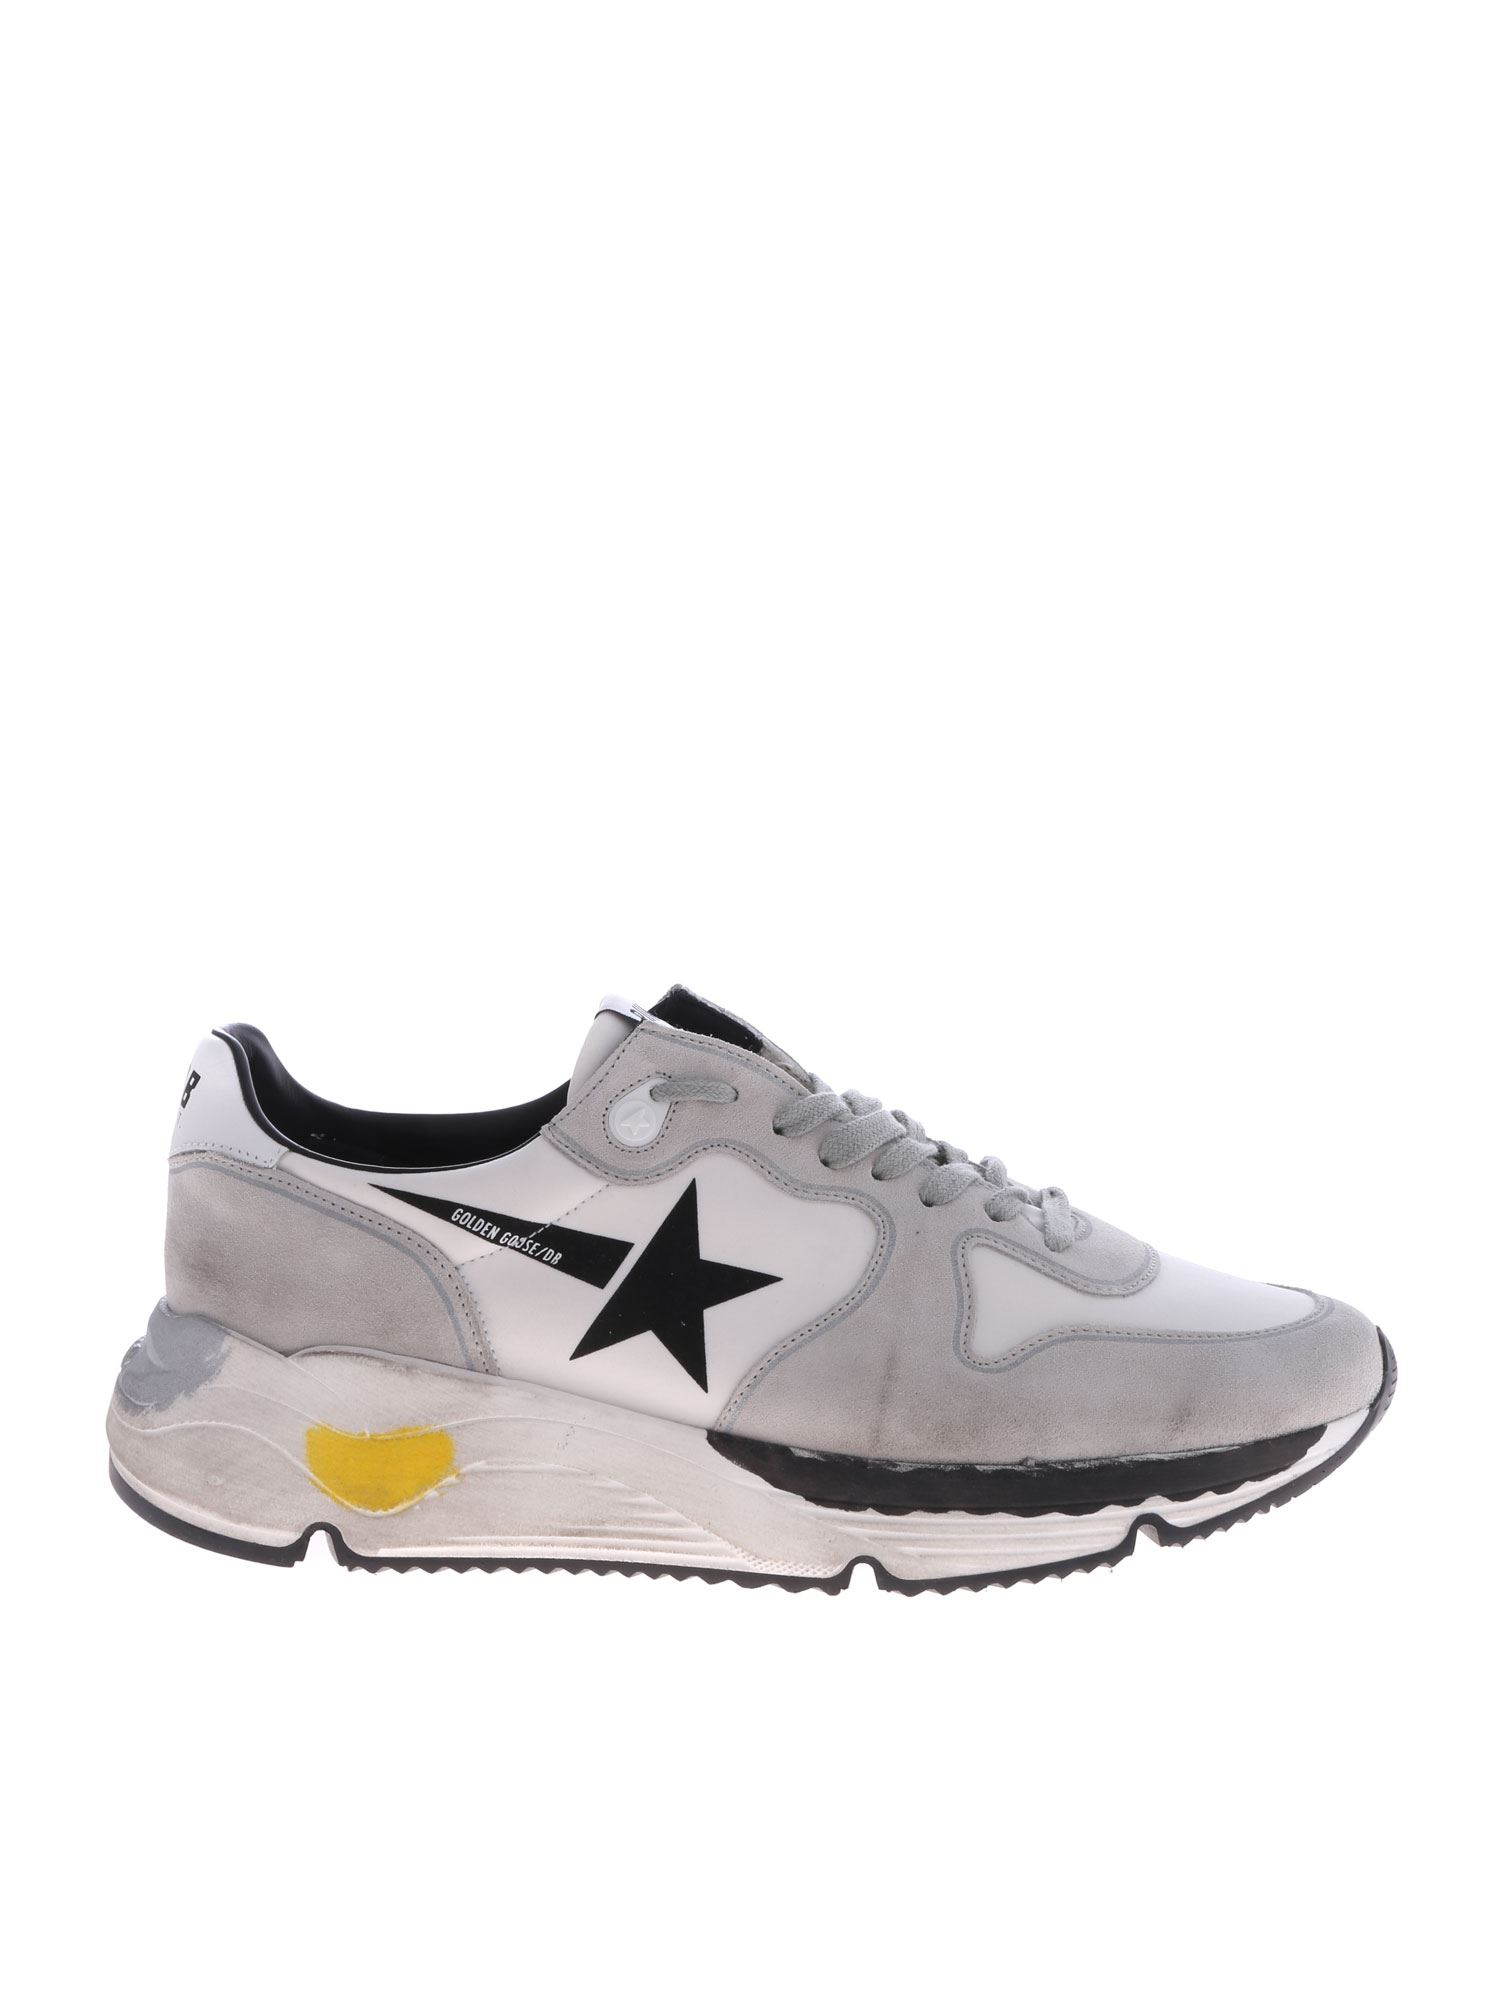 GOLDEN GOOSE WHITE AND ICE WHITE GGDB RUNNING SNEAKERS